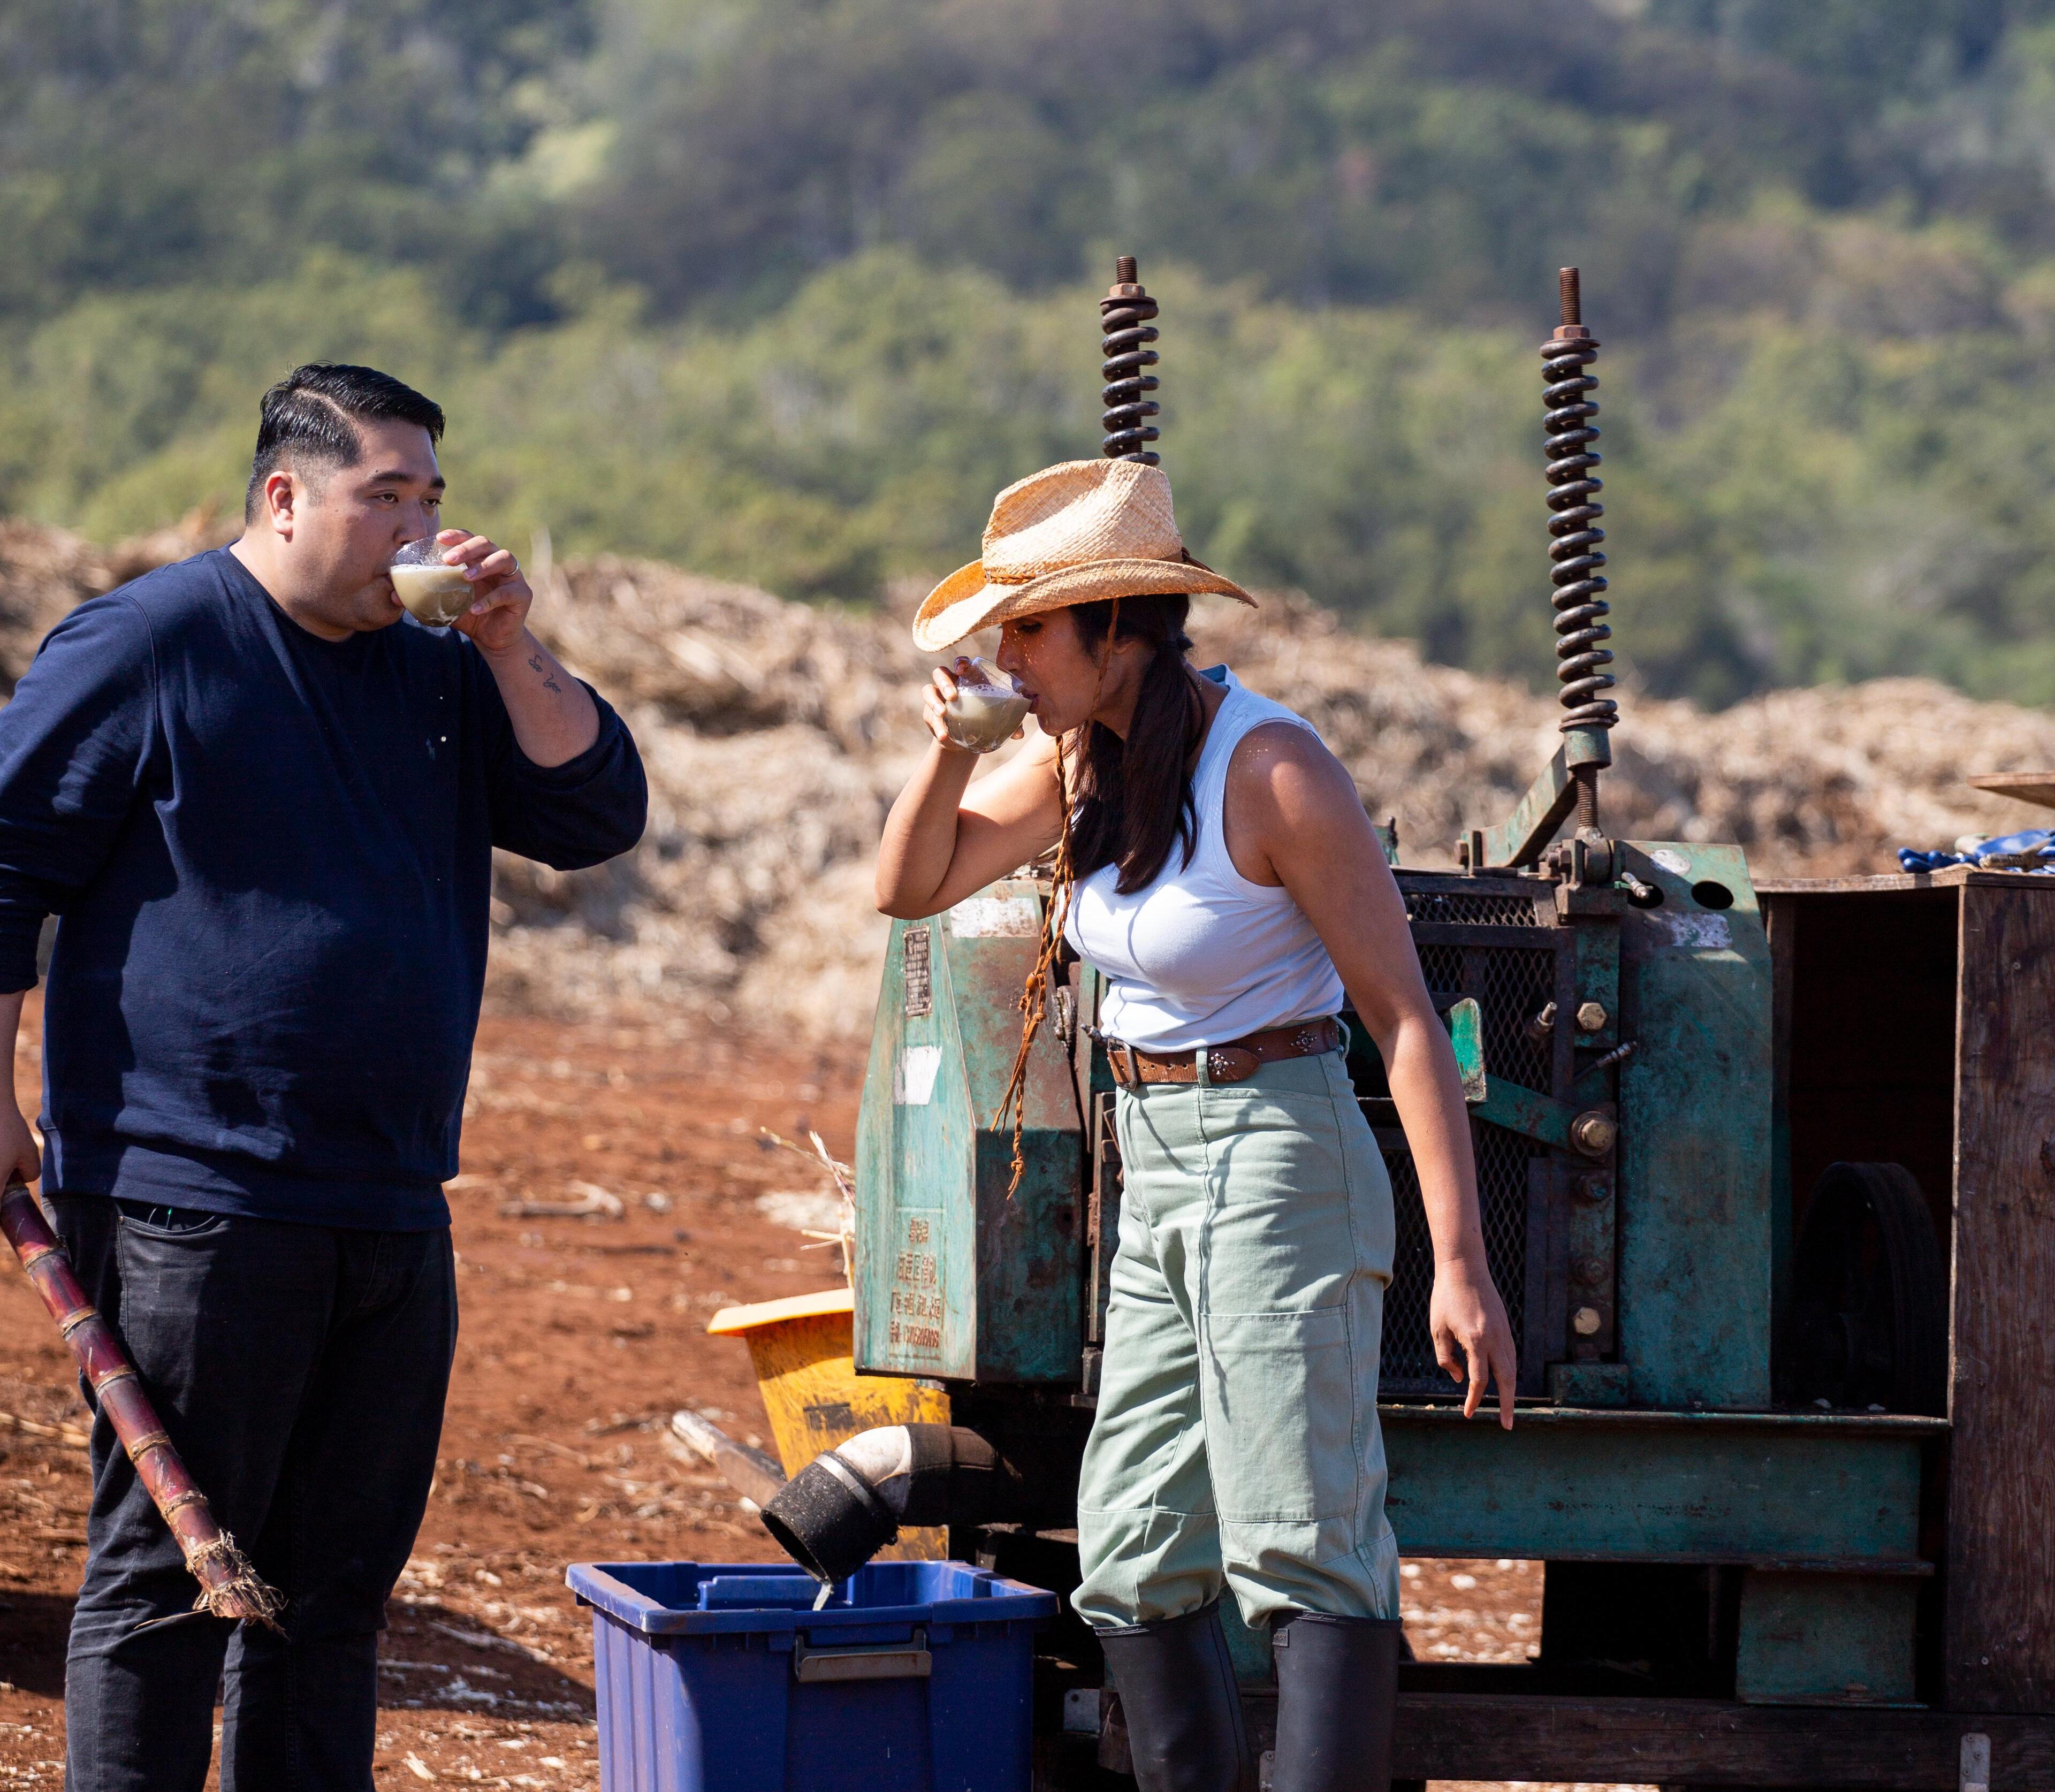 Chris Kajioka (left), in a dark blue shirt and black jeans, and Padma Lakshmi (right), in a white tank top, green cargo pants, boots and a cowboy hat, drink sugar cane juice on a sugar cane farm.